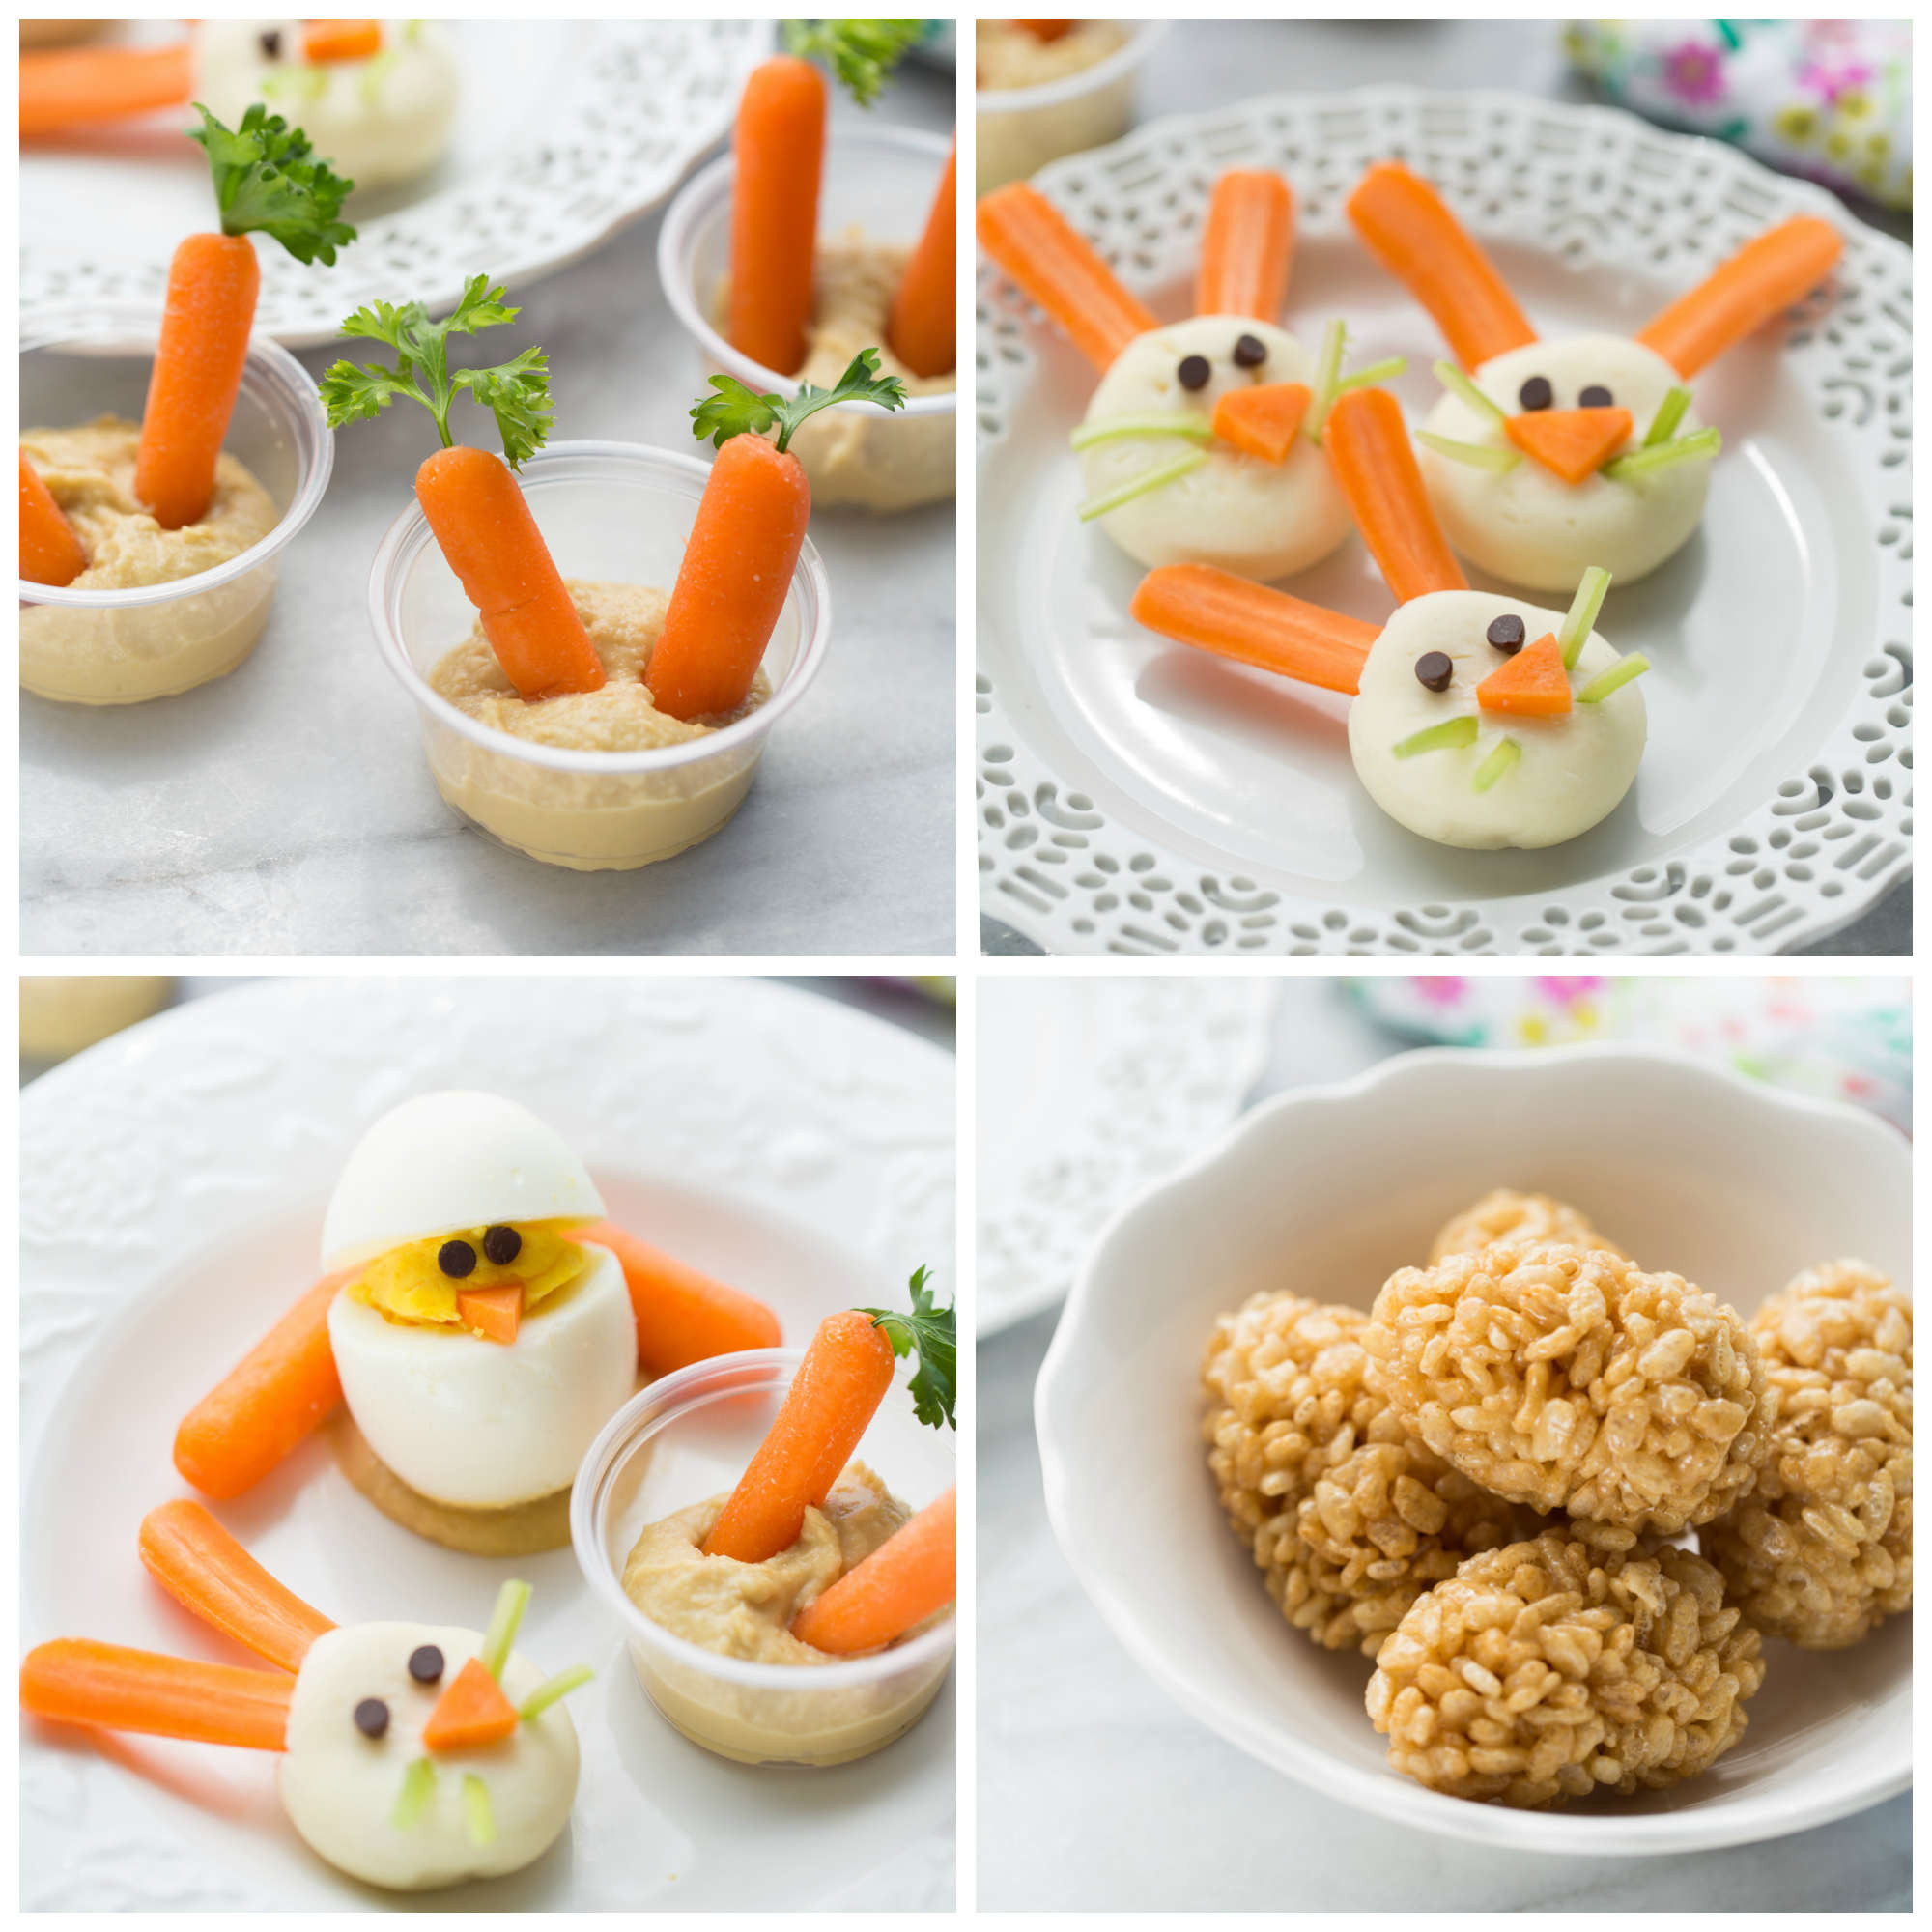 Healthy Kids Snacks  4 Healthy Kids Easter Snacks Meaningful Eats